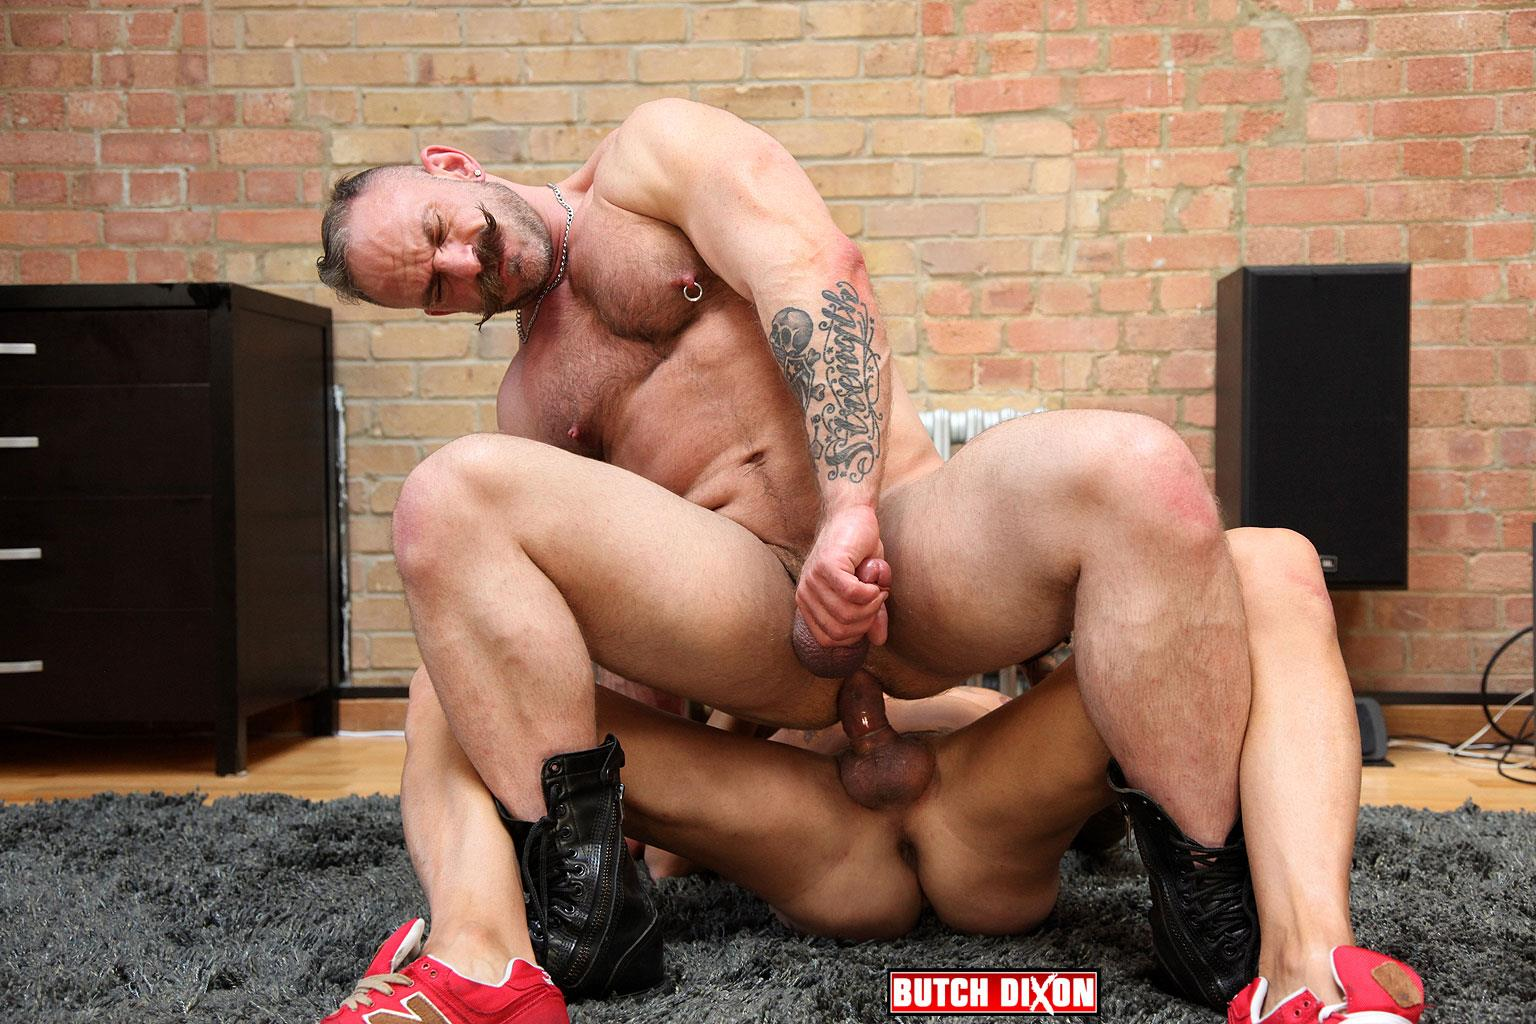 Butch Dixon Samuel Colt and Frank Valencia Hairy Muscle Daddy Getting Fucked By Latino Cock Amateur Gay Porn 15 Happy Fathers Day: Hairy Muscle Daddy Samuel Colt Taking A Big Cock Up The Ass